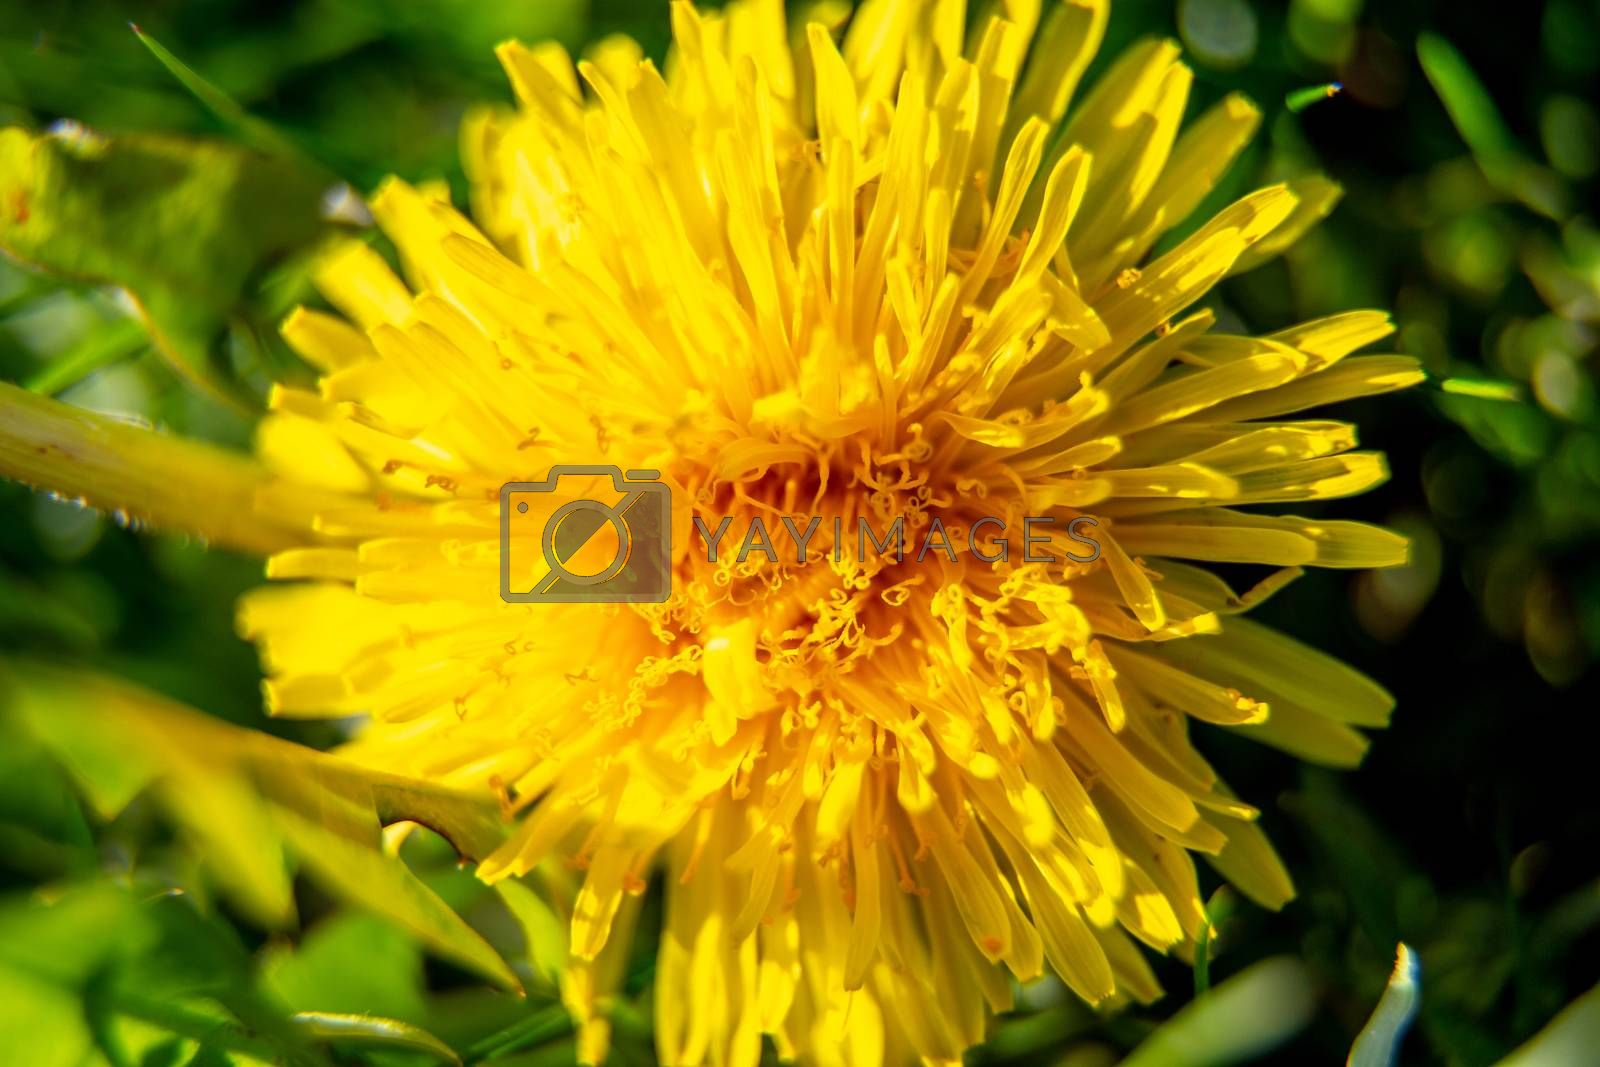 Yellow dandelion flower on green background in spring sunny day. Close-up of yellow dandelion flower in green meadow. Blooming dandelions in Latvia.